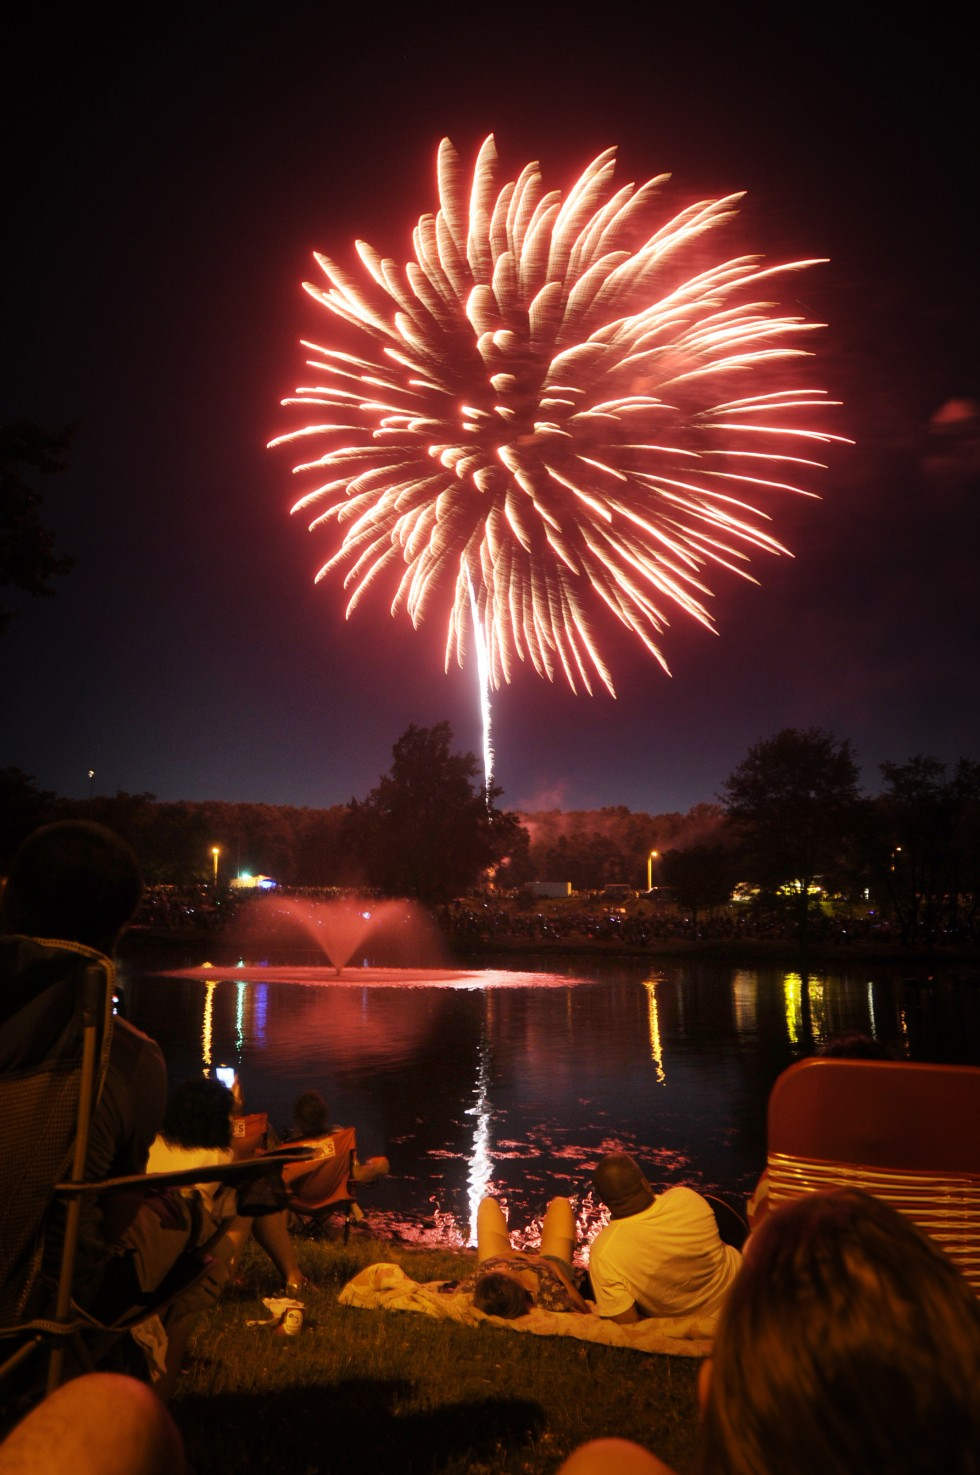 Fireworks capped the night festivities. Viewers lined the trails and pond to watch the fireworks.